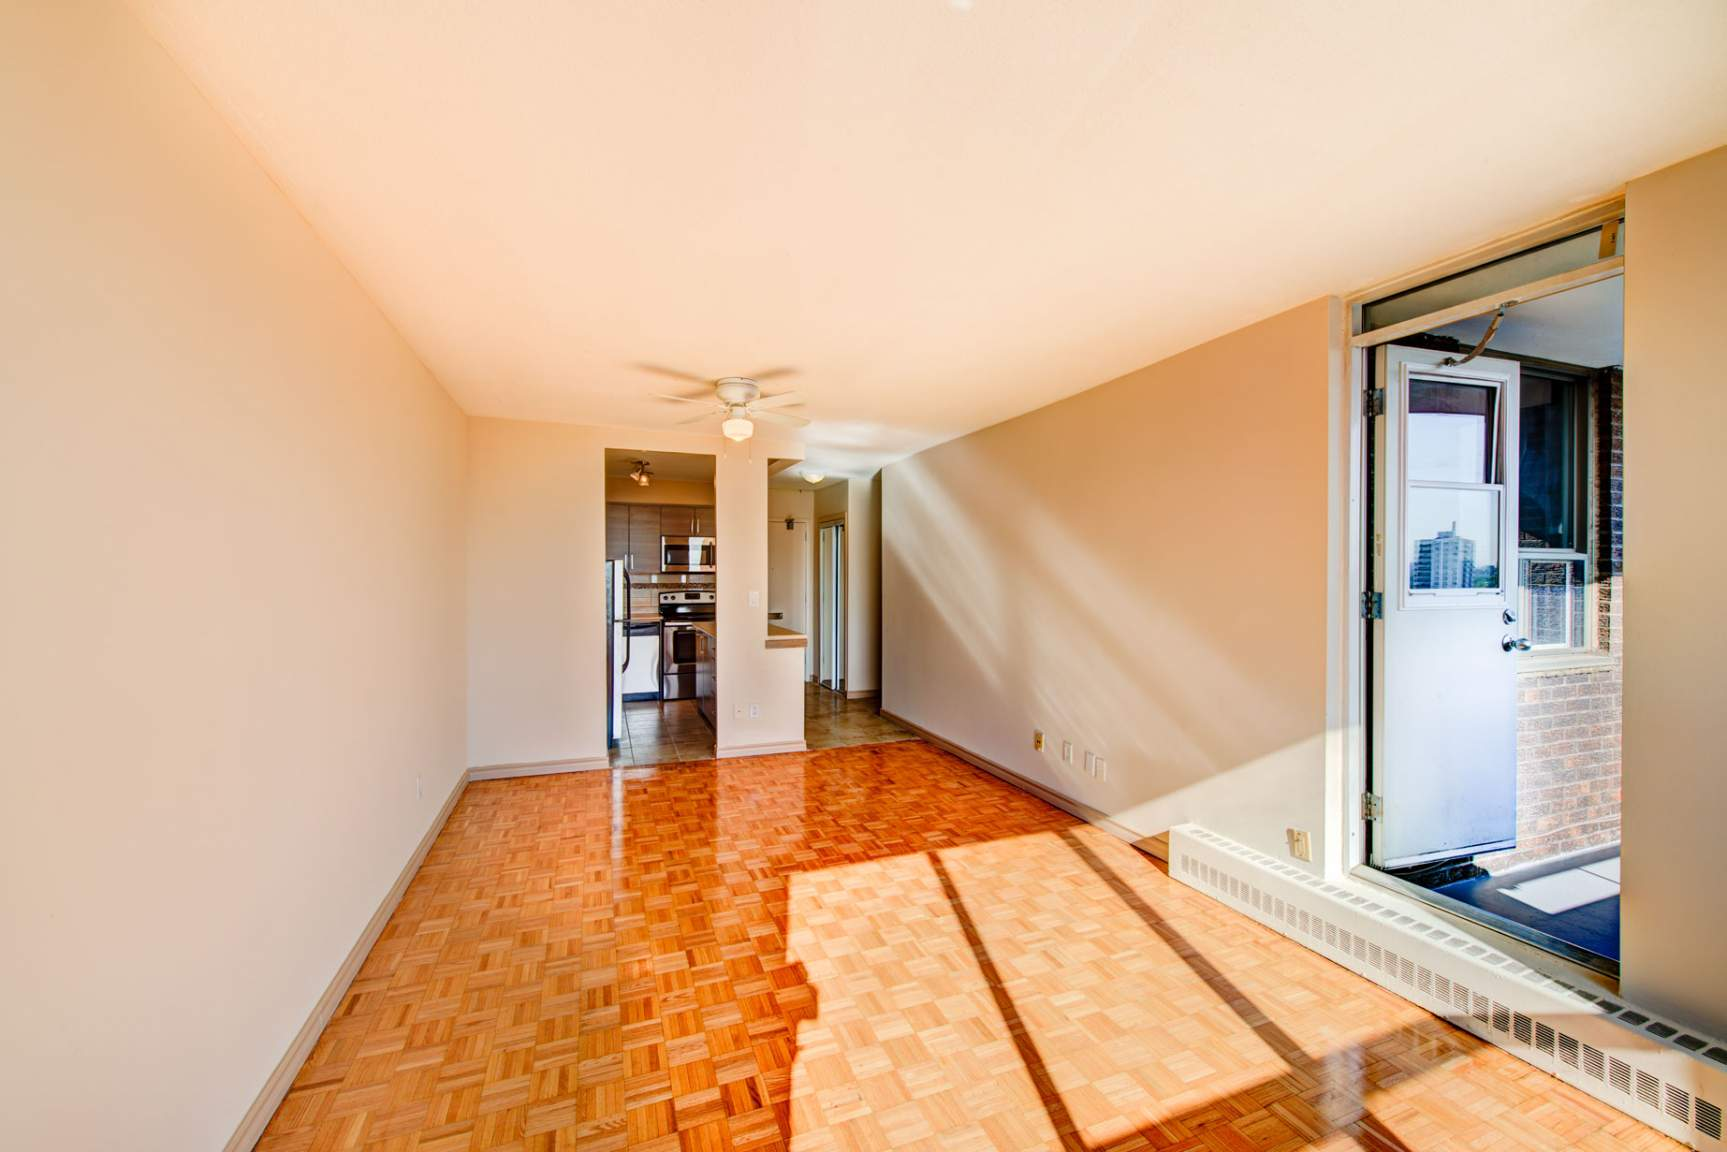 1 bedroom Apartments for rent in North-York at Hunters Lodge - Photo 14 - RentersPages – L400651